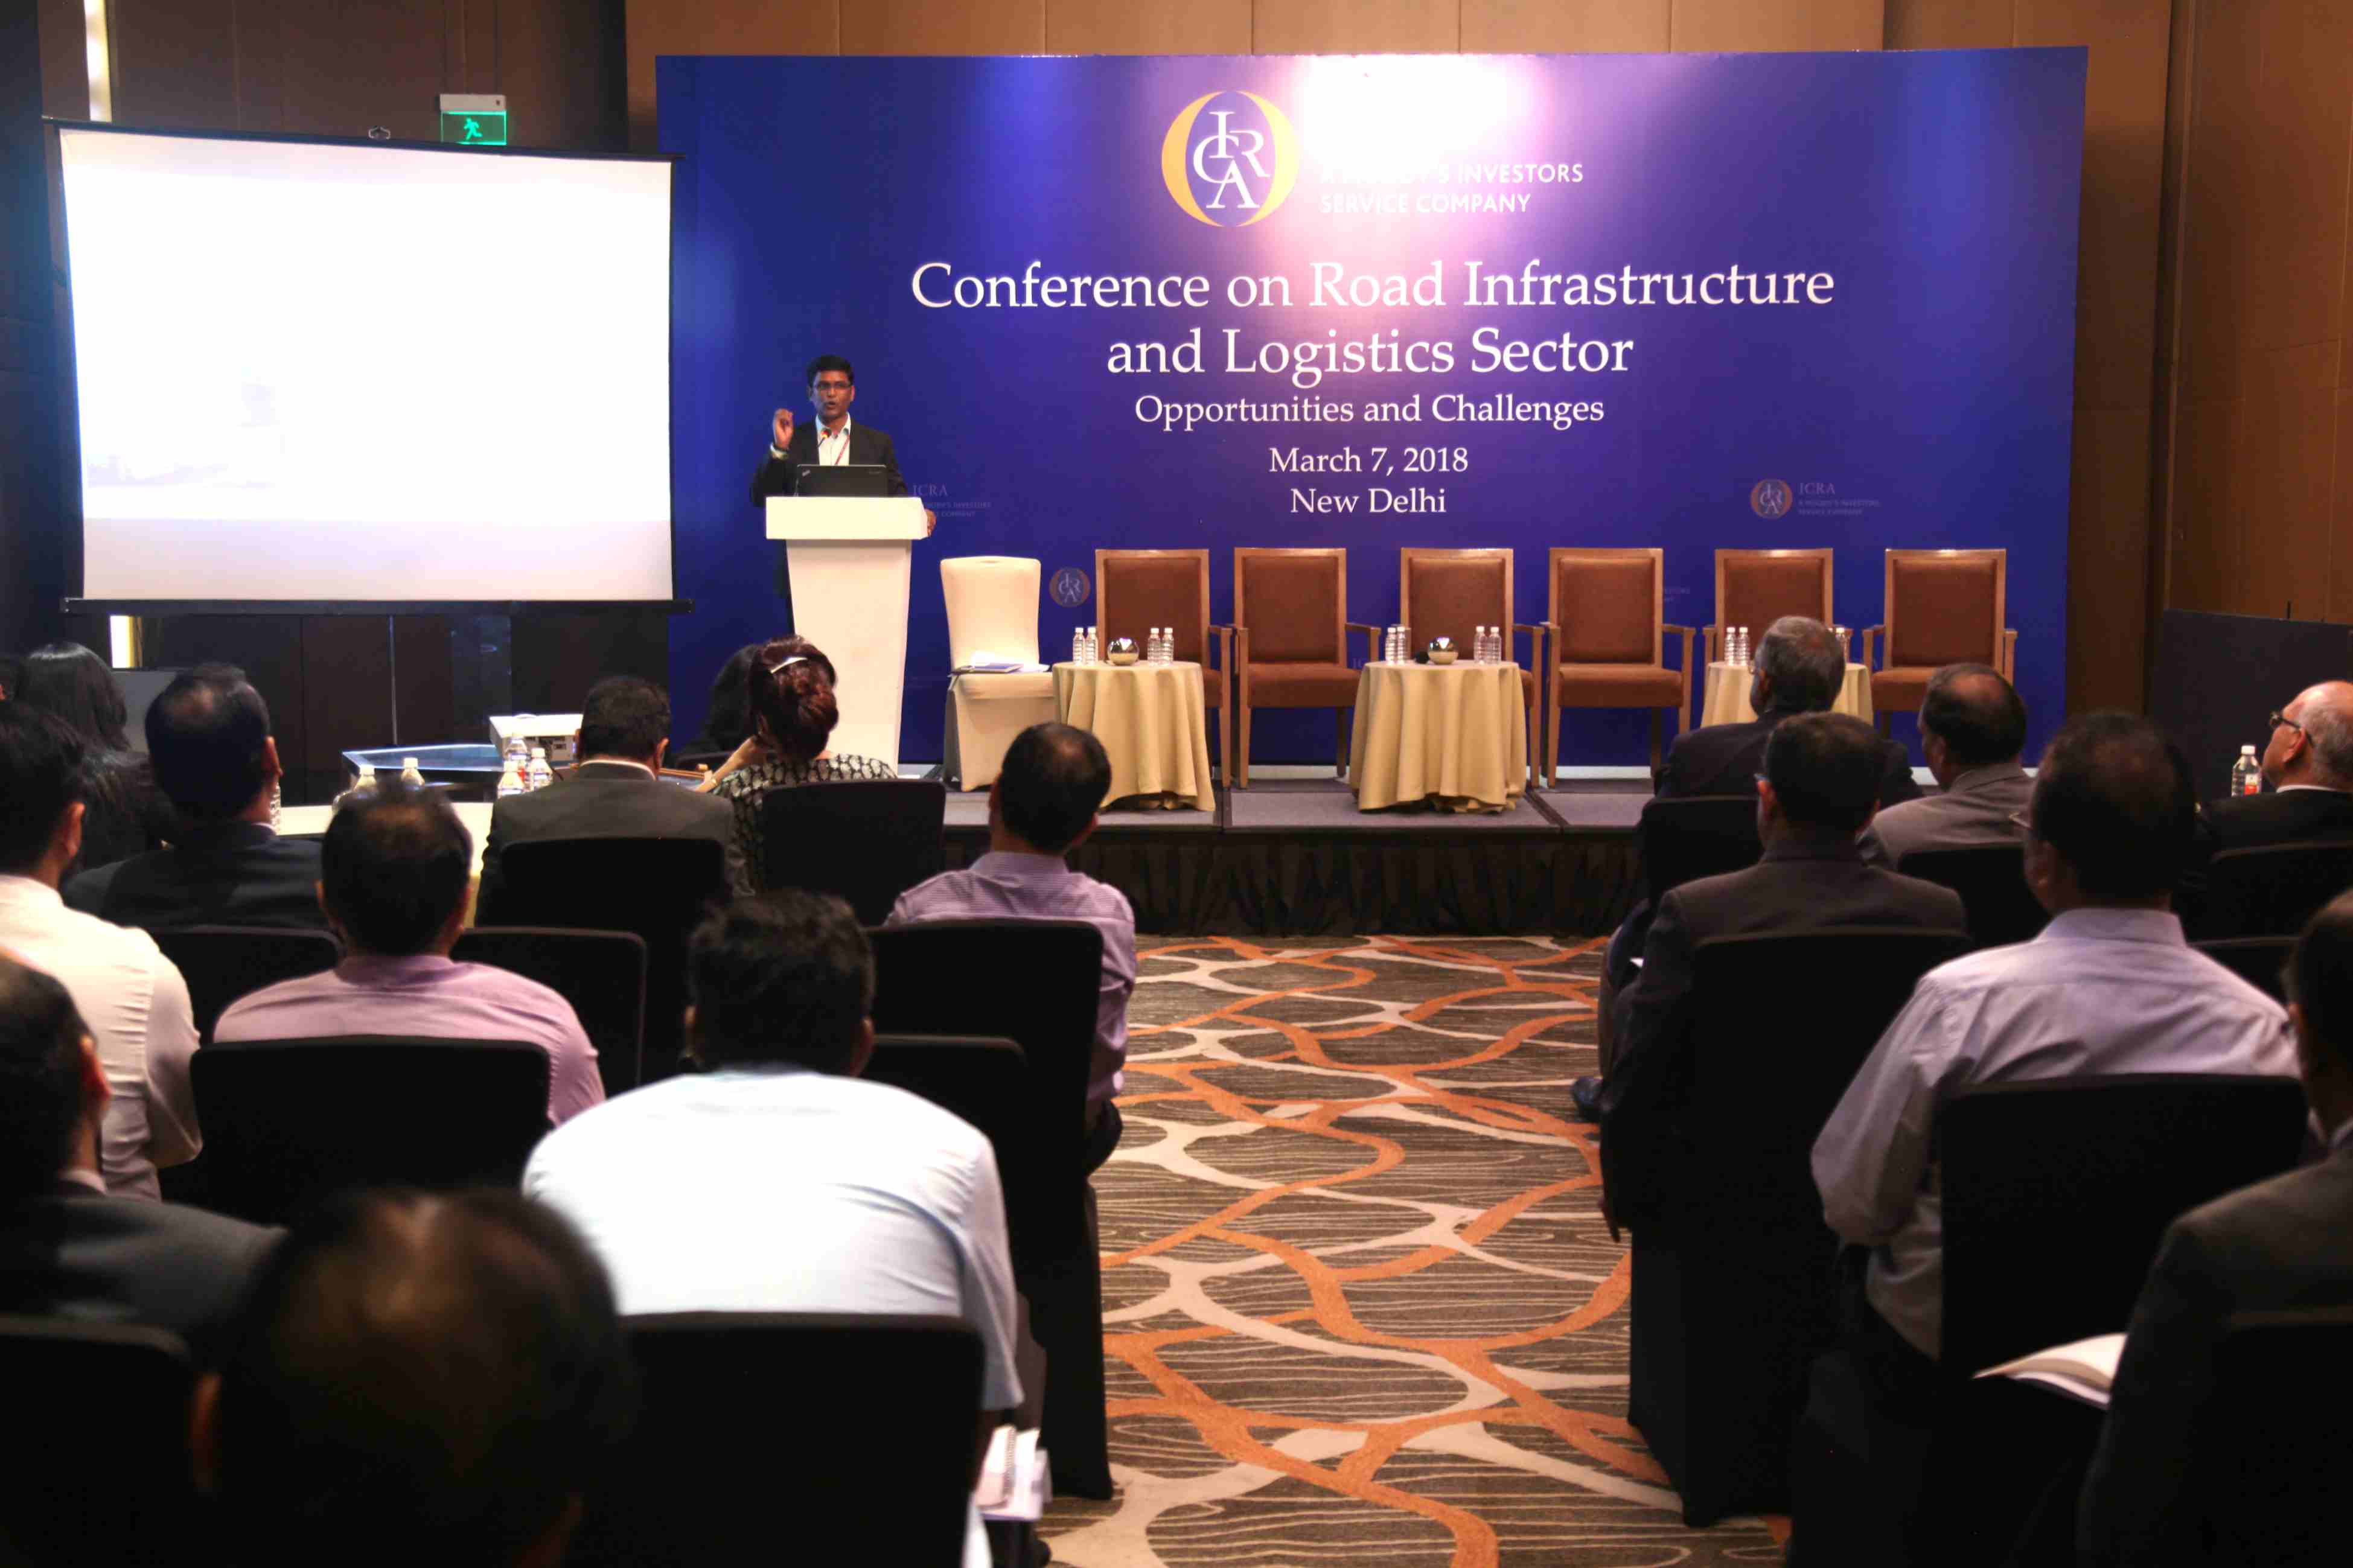 Power packed audience at the keynote address by Mr. Keshav Chandra,  Joint Secretary (Logistics), Department of Commerce, Ministry of Commerce and Industry, Government of India